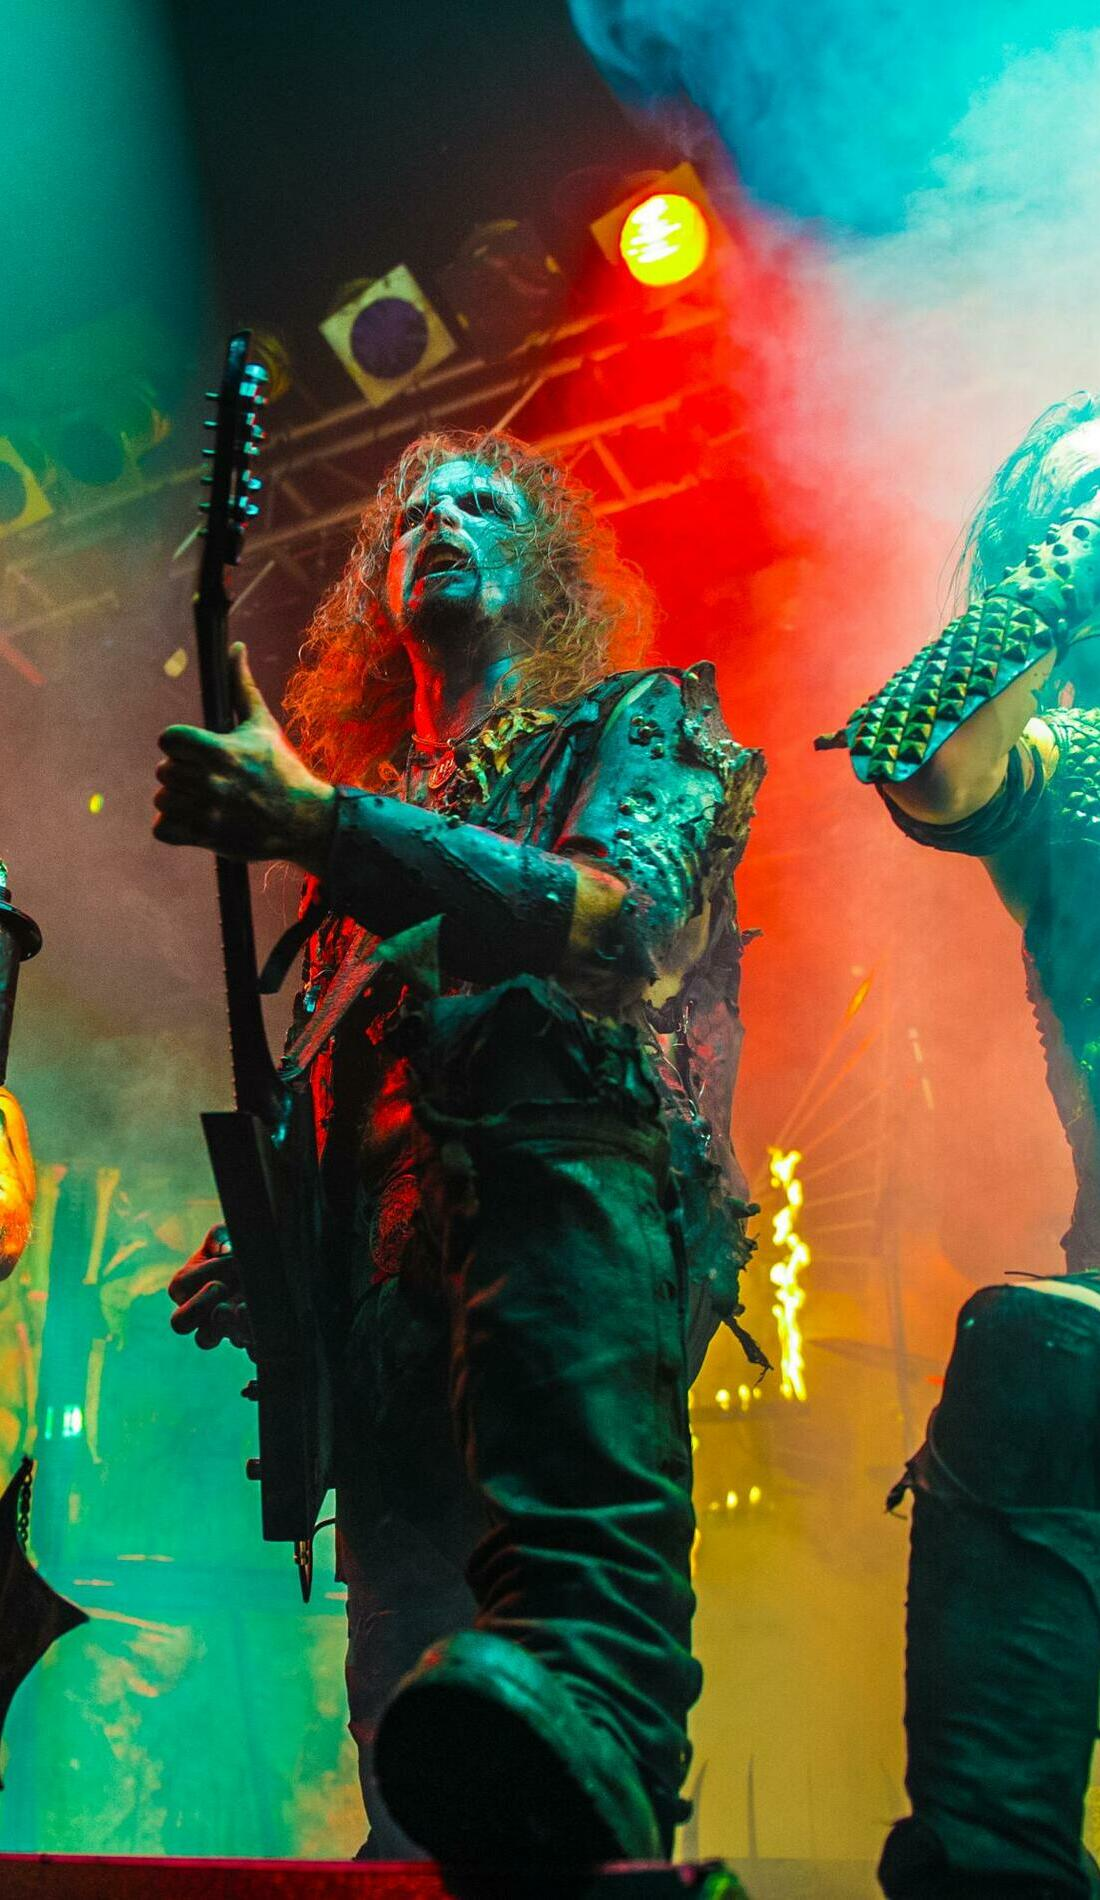 A Watain live event